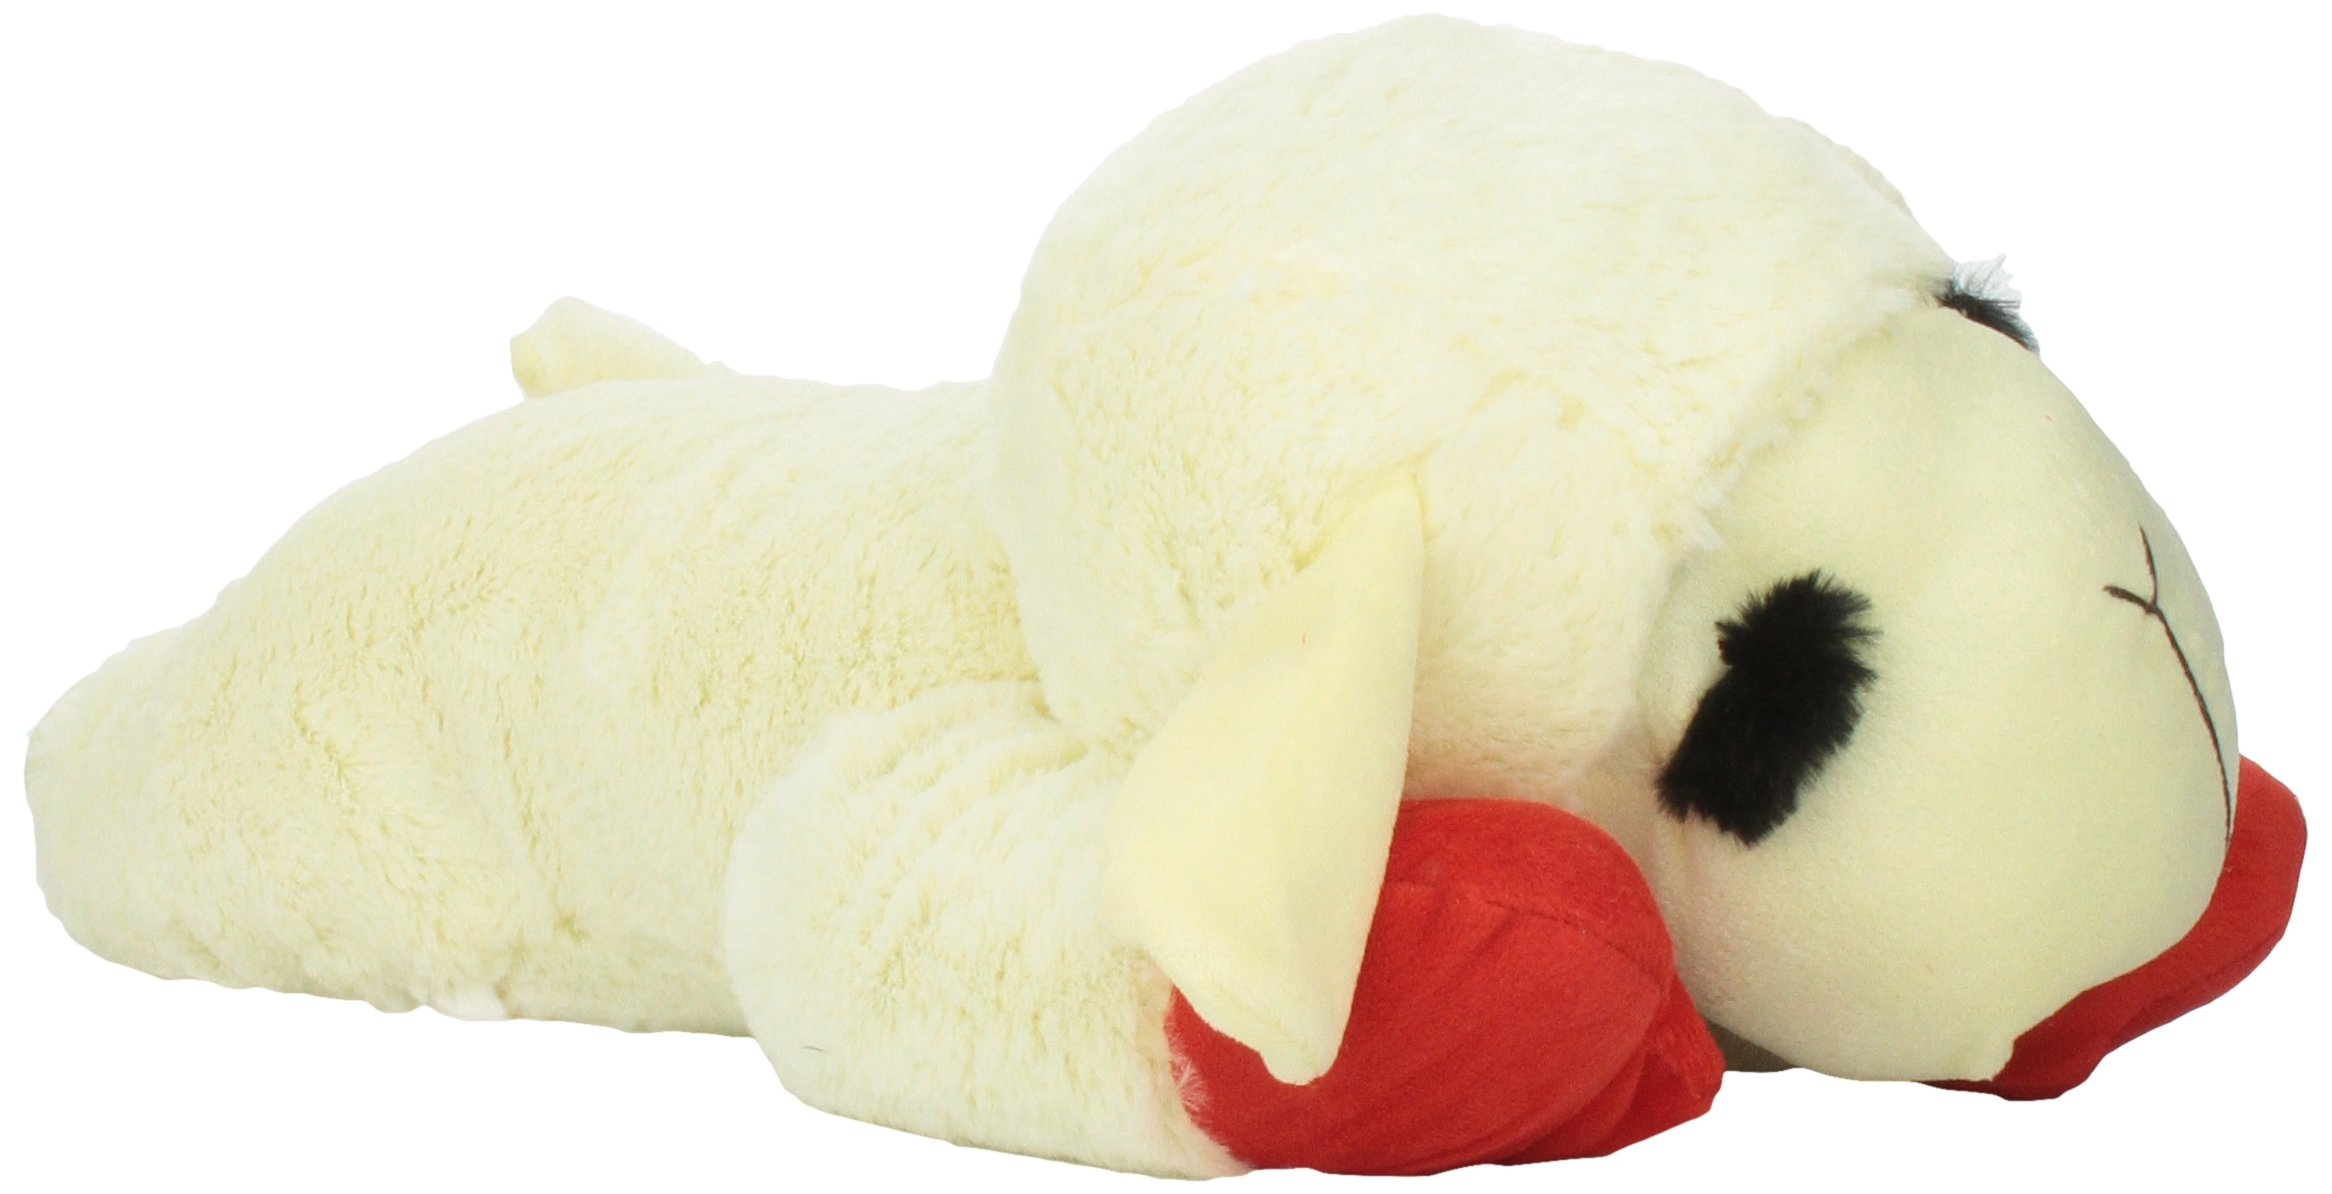 Multipet 48388 Officially Licensed Lamb Chop Jumbo White Plush Dog Toy, 24-Inch by Multipet (Image #4)